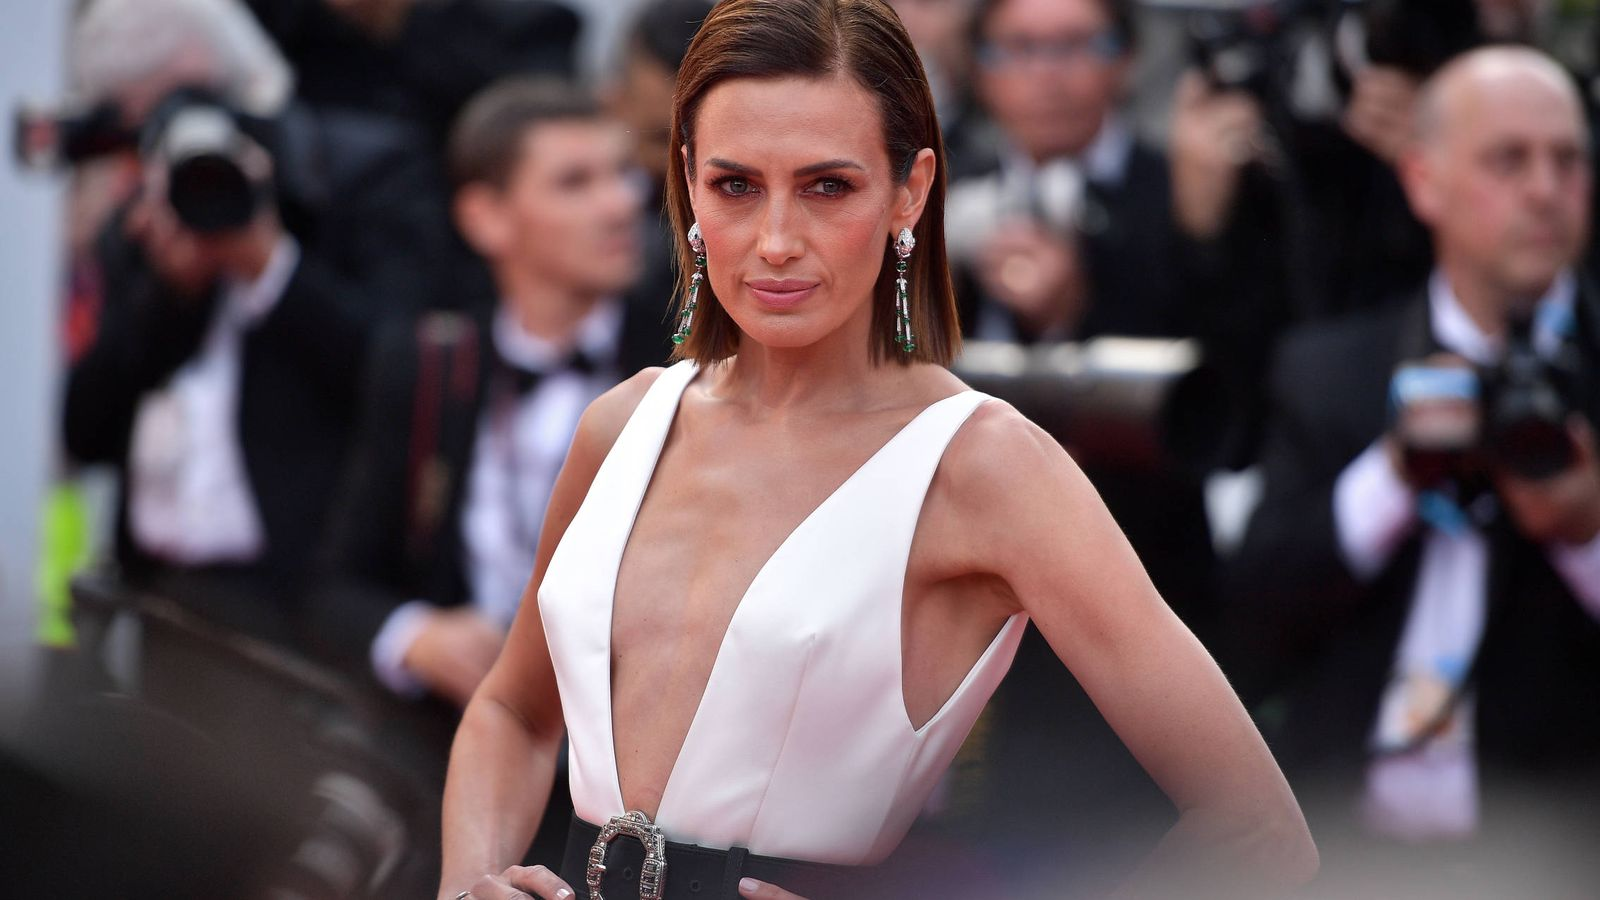 Foto: Nieves Álvarez en Cannes. (Getty)